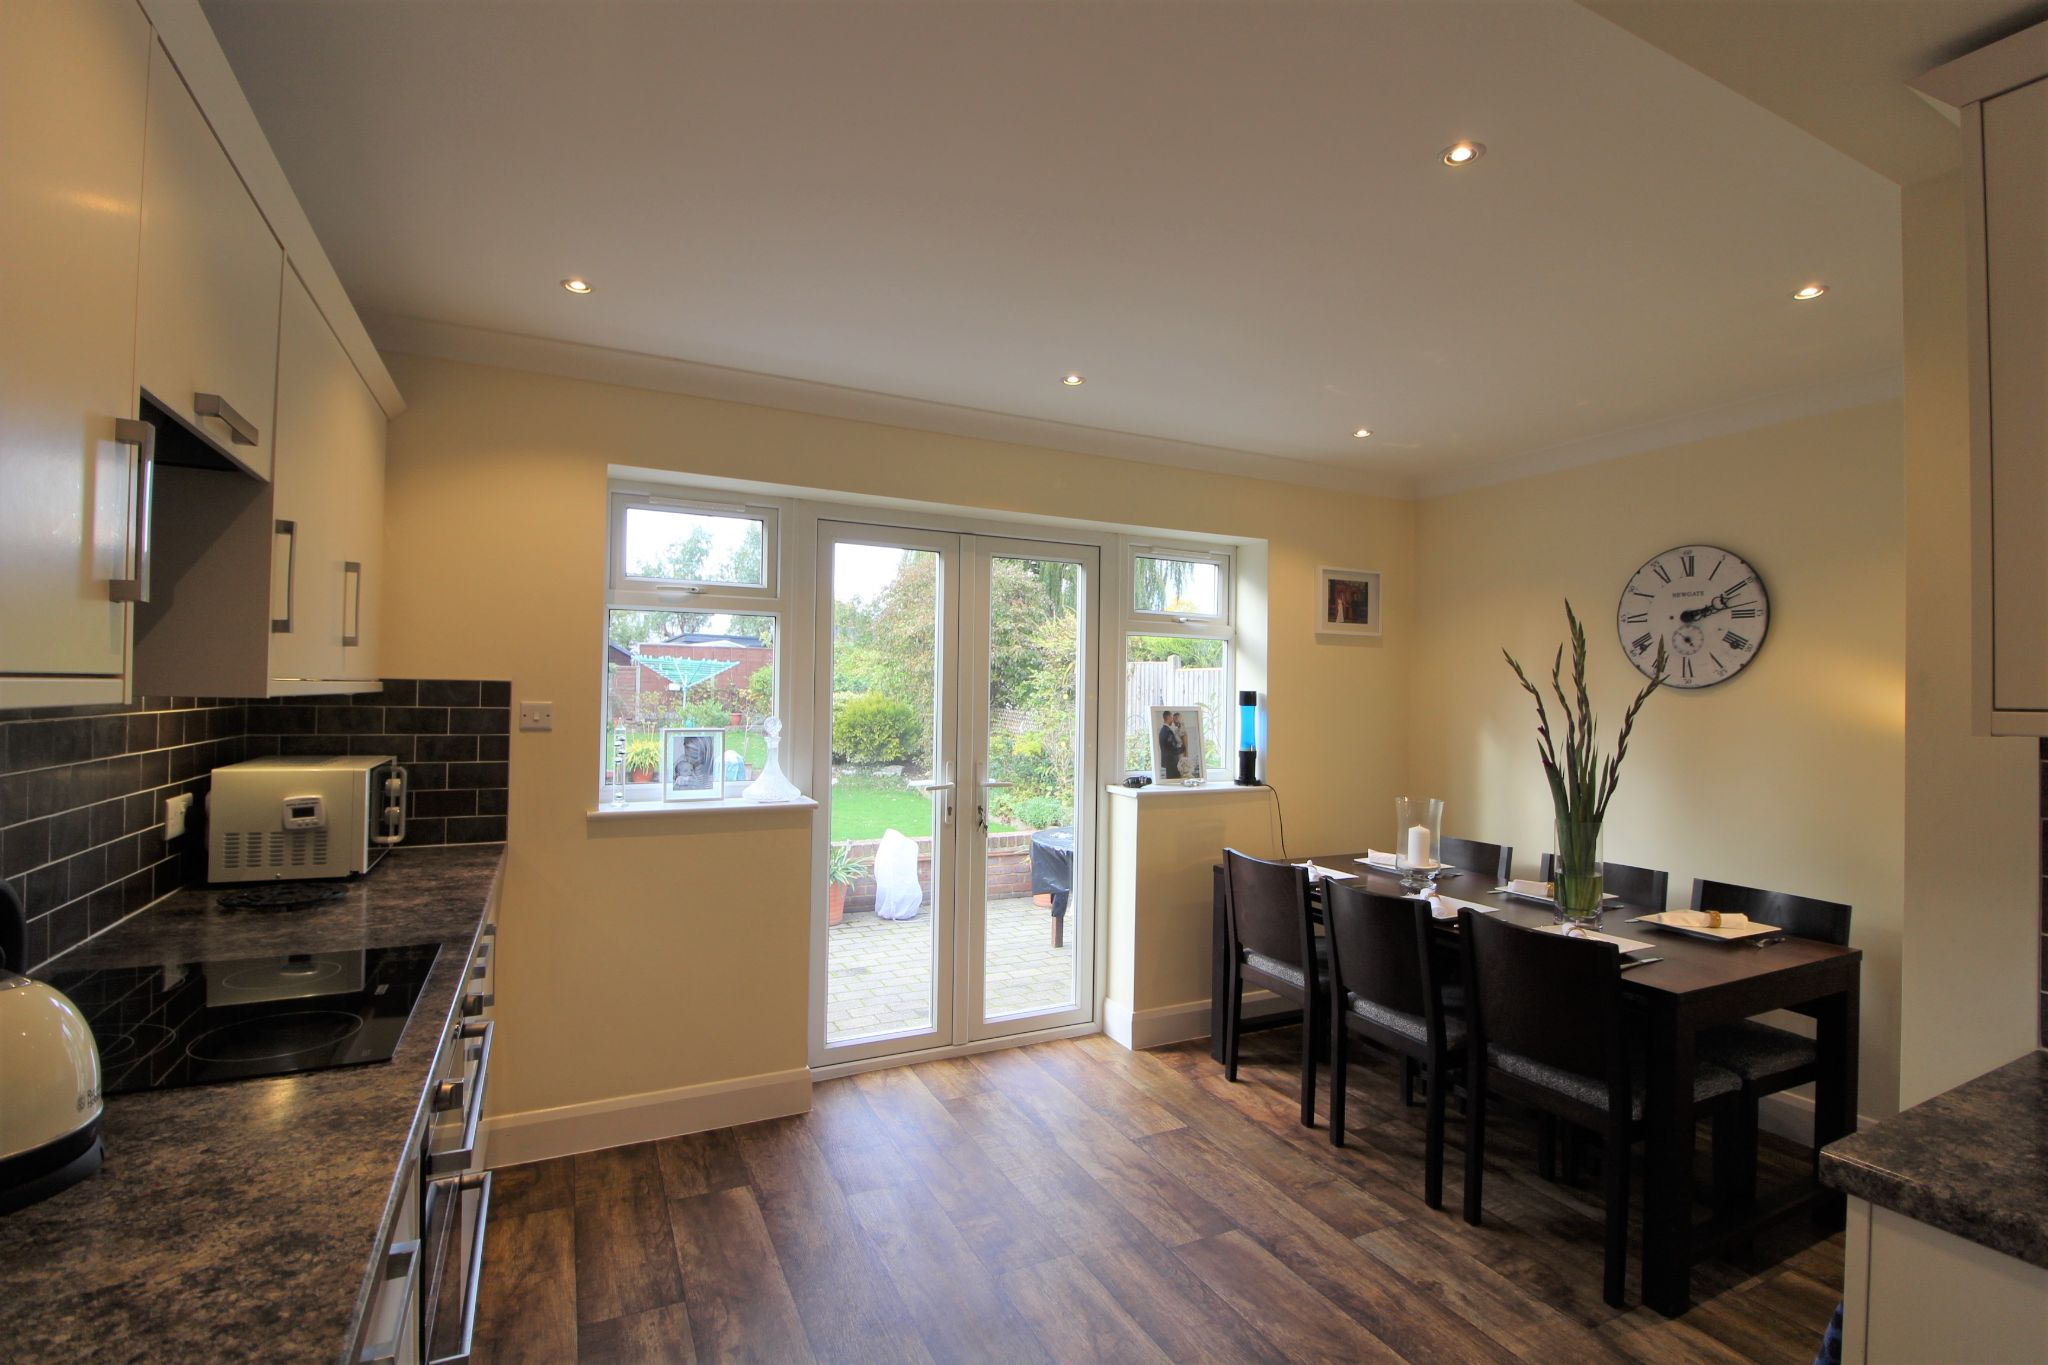 4 bedroom semi-detached bungalow SSTC in Potters Bar - Photograph 11